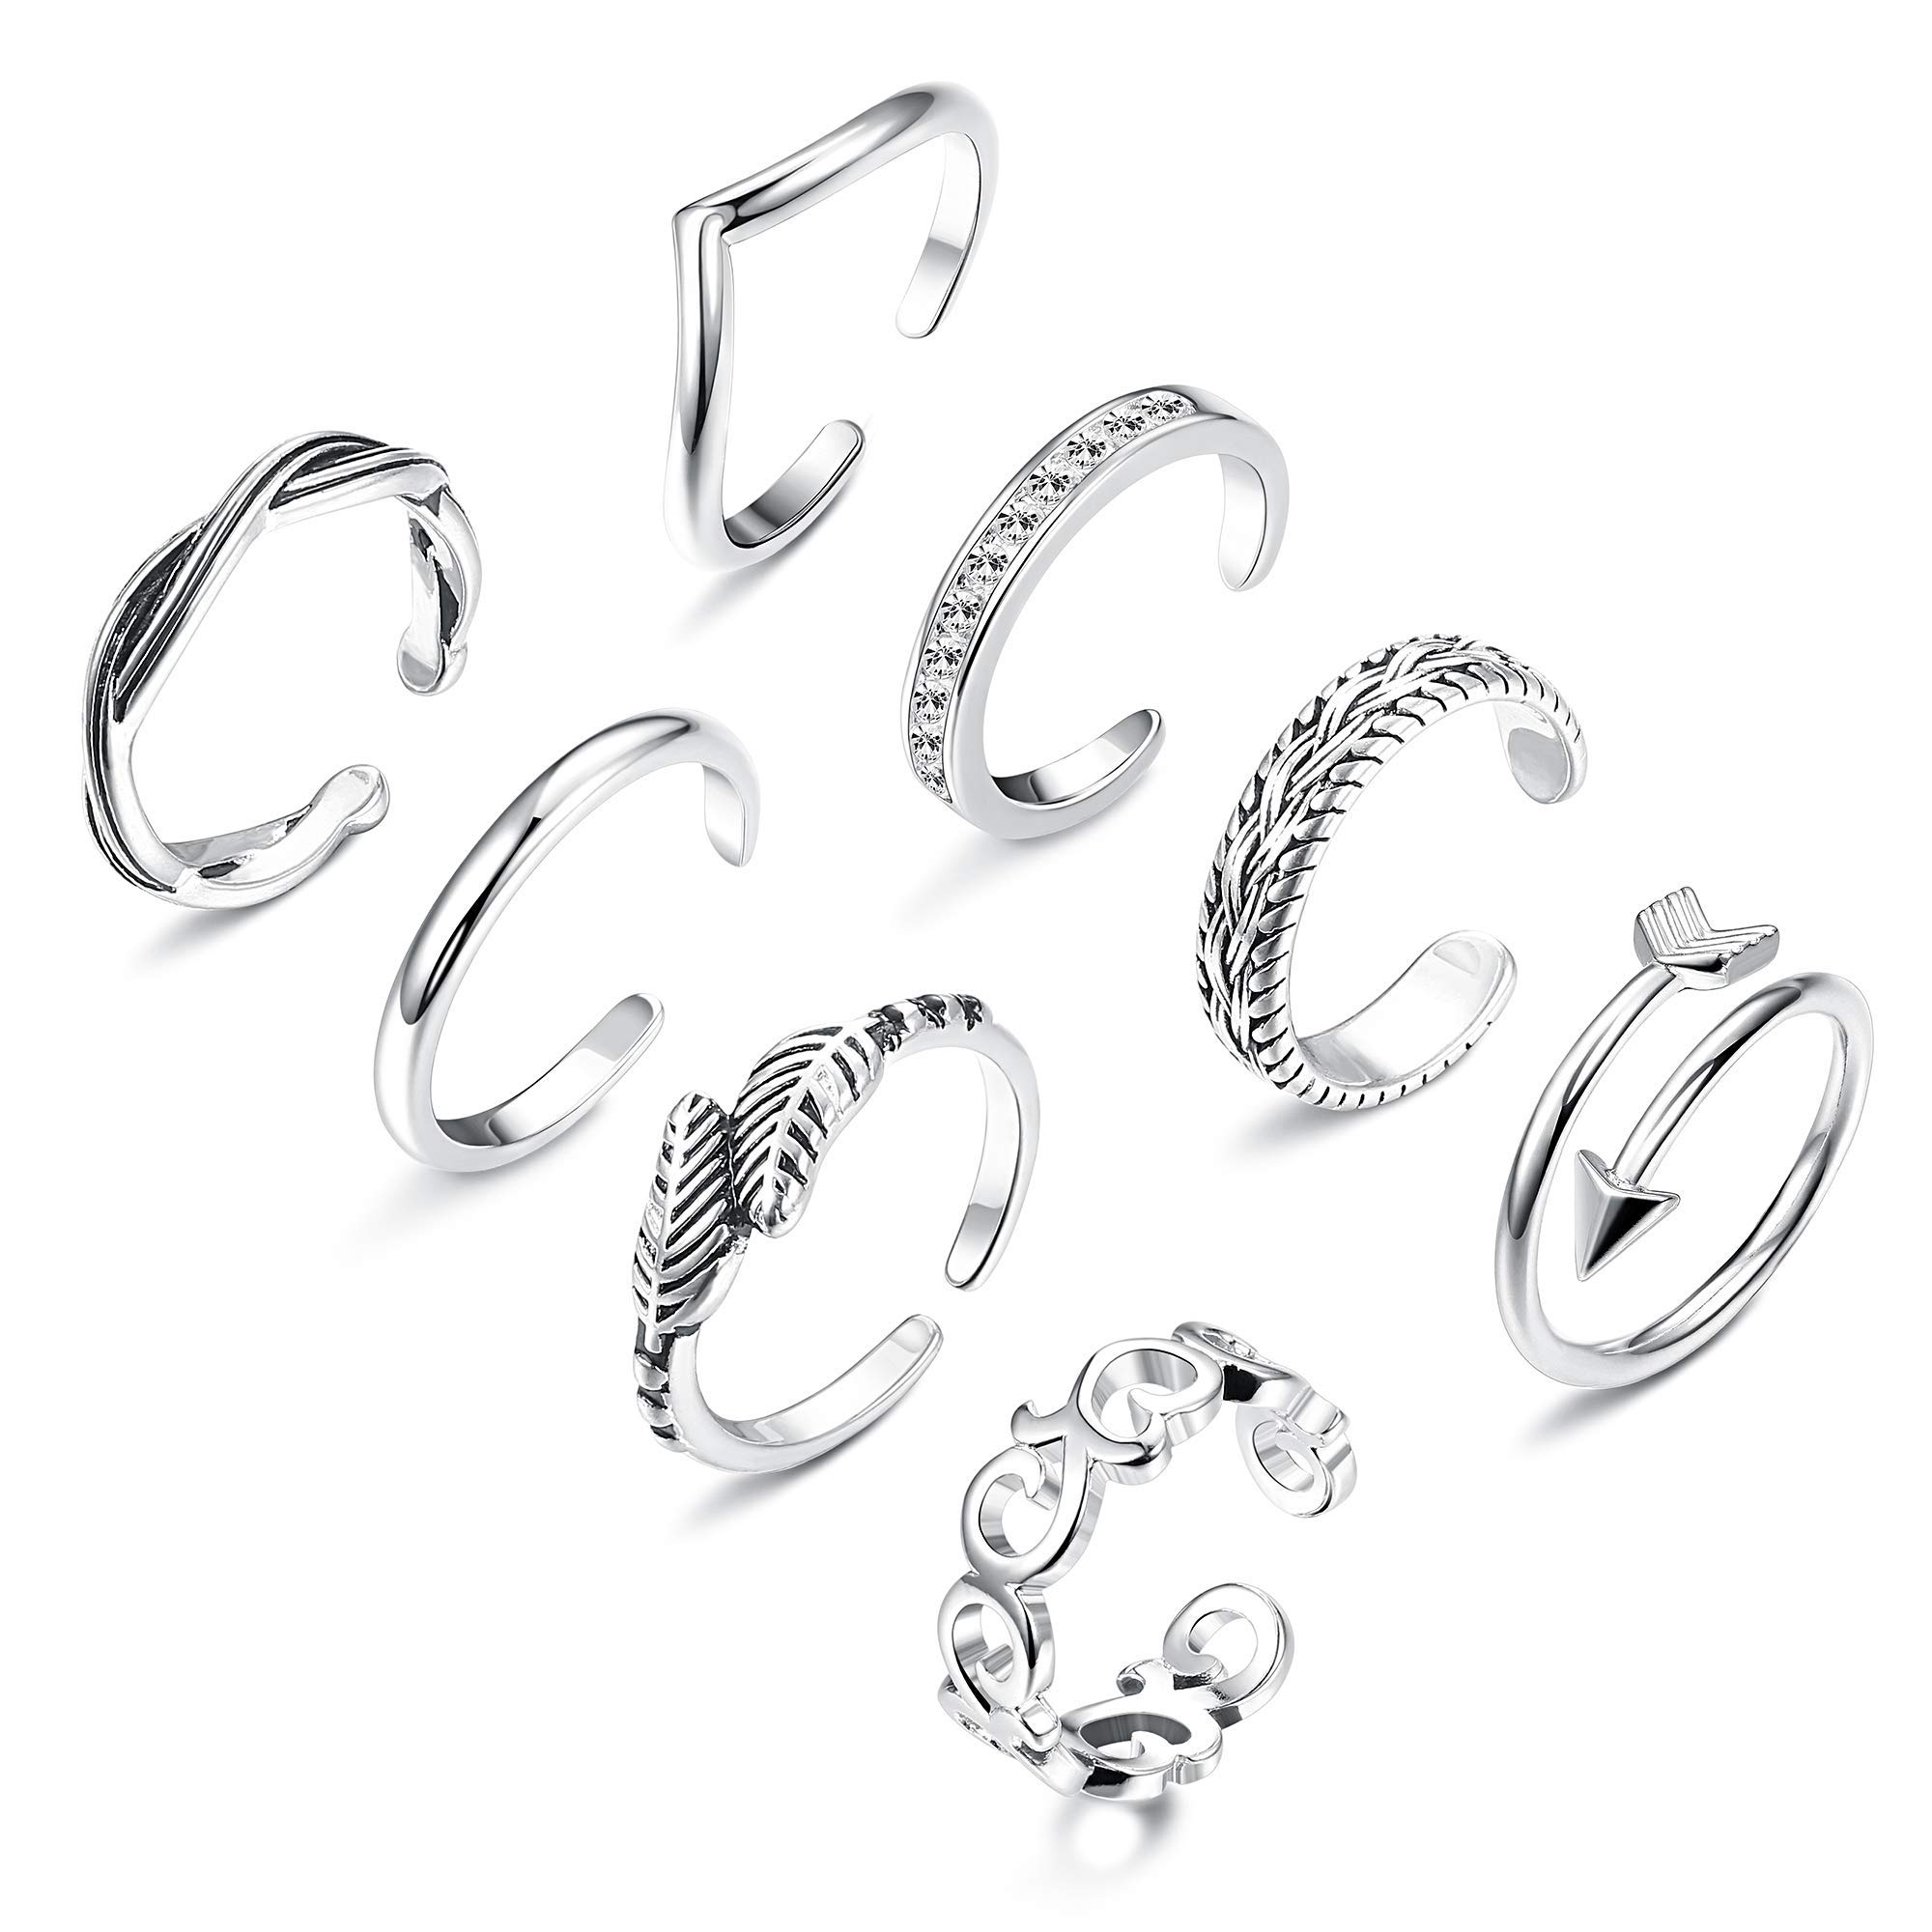 Finrezio 8Pcs Open Toe Rings for Women Girls Adjustable Tail Ring Flower Knot Simple Toe Ring Gifts Jewelry Set by Finrezio